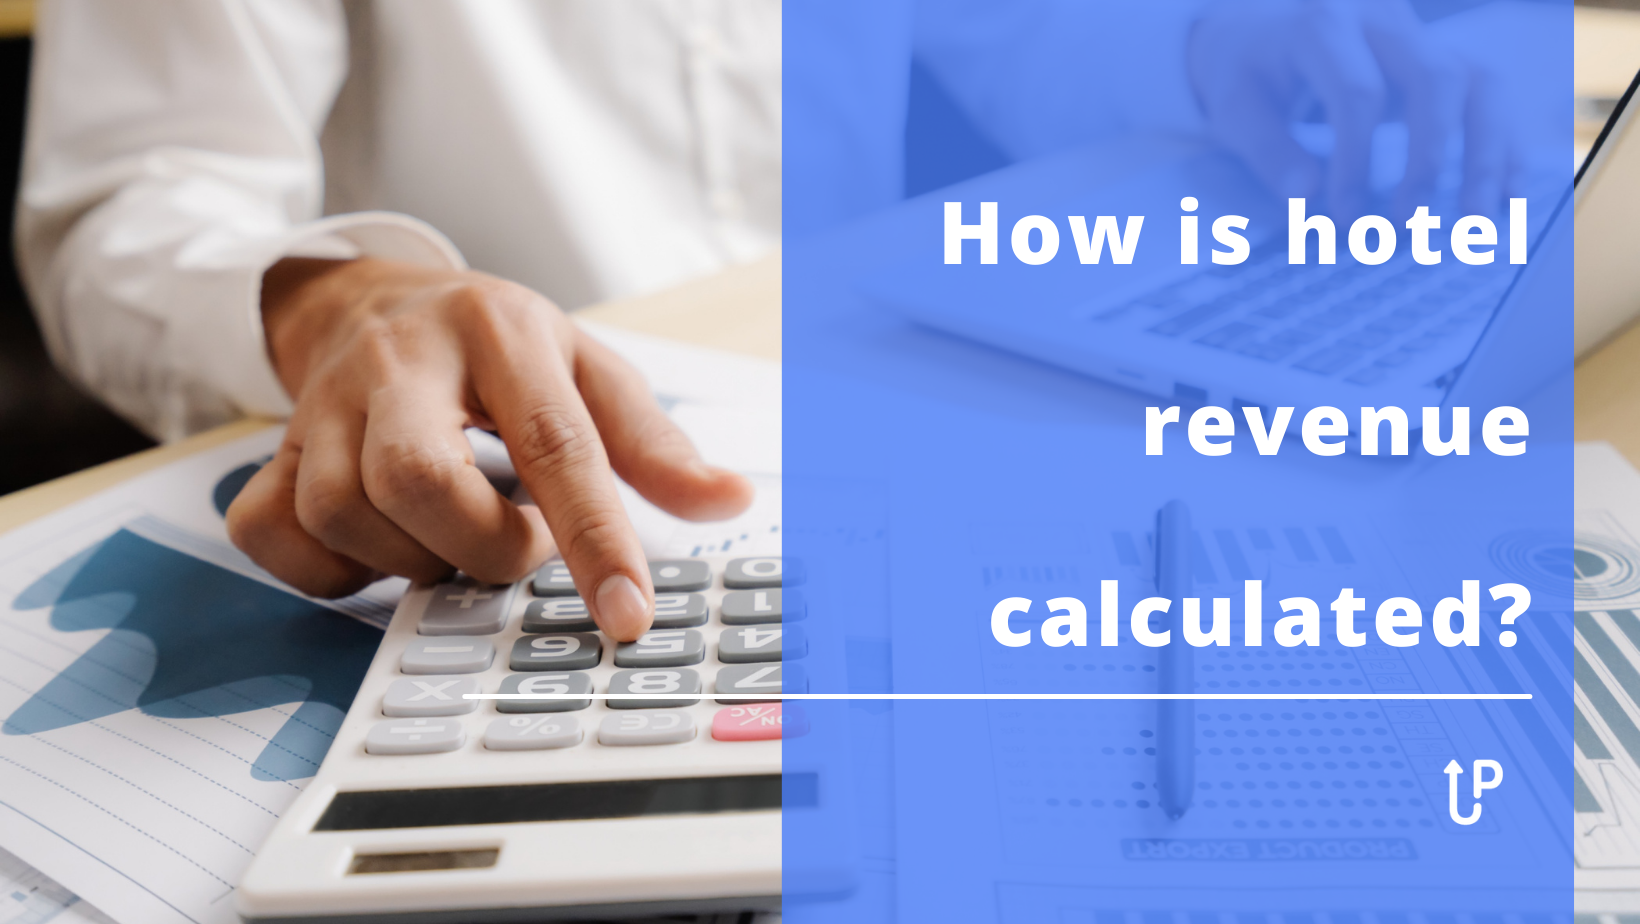 How is hotel revenue calculated?